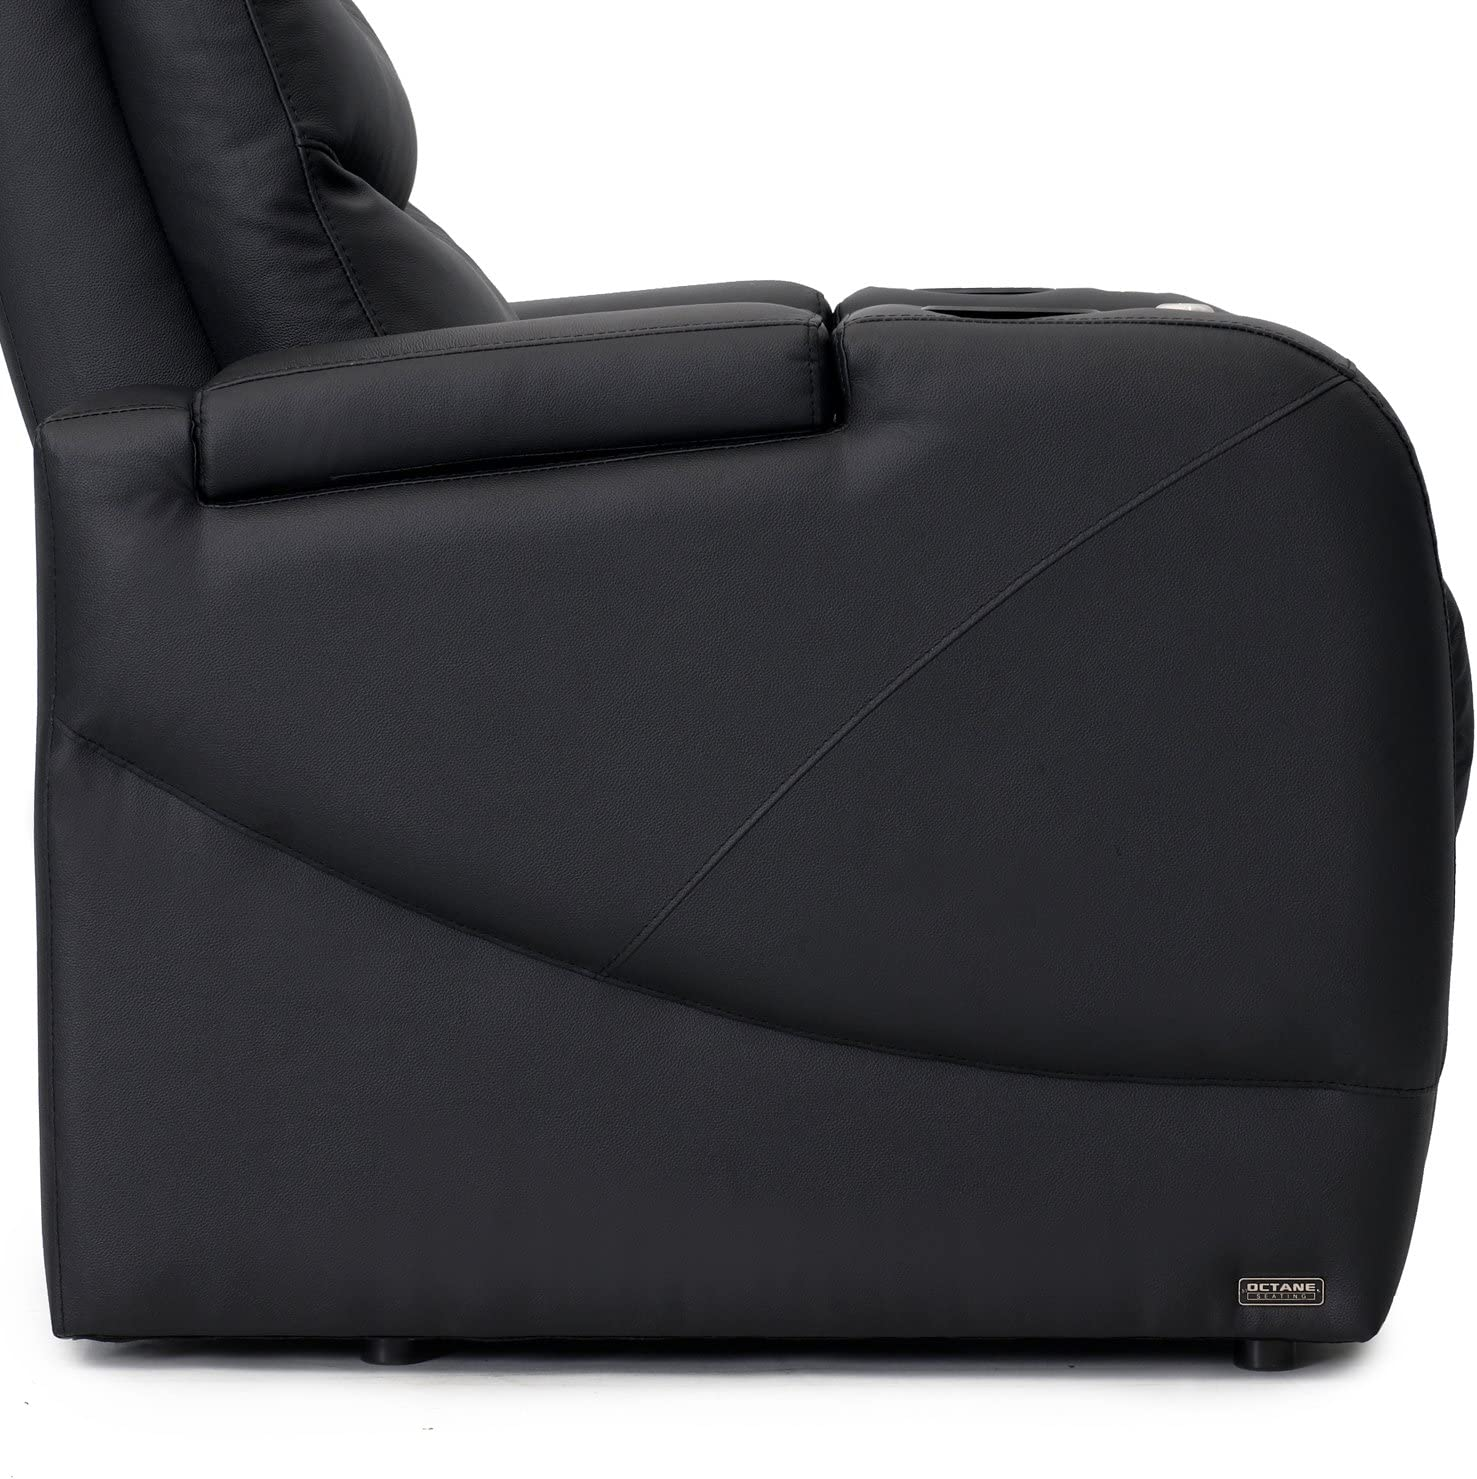 Octane Stealth XL450 Row of 3 Seats Straight Row in Black Leather with Power Recline